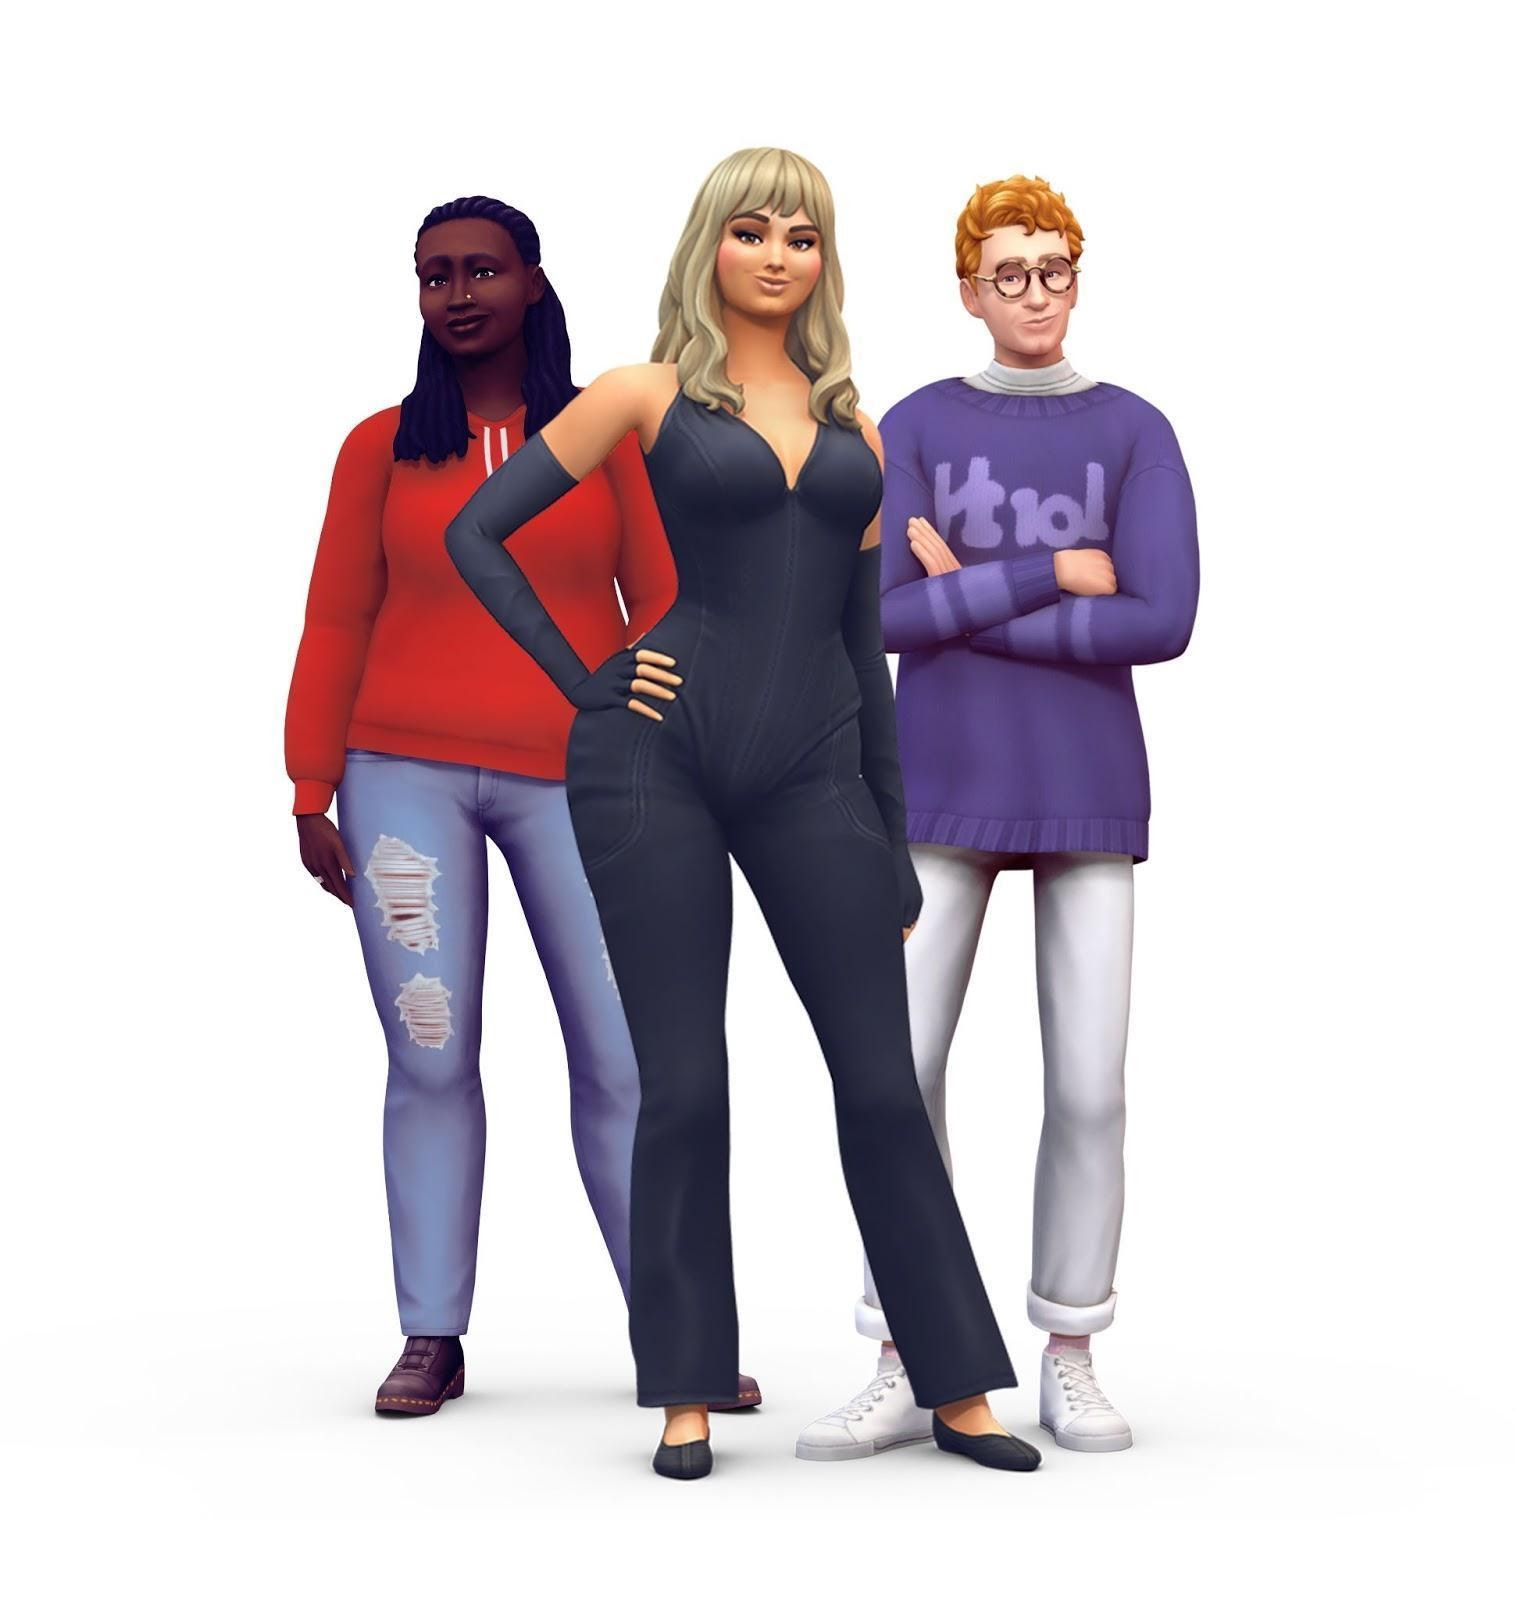 The Sims Sessions music festival has already started